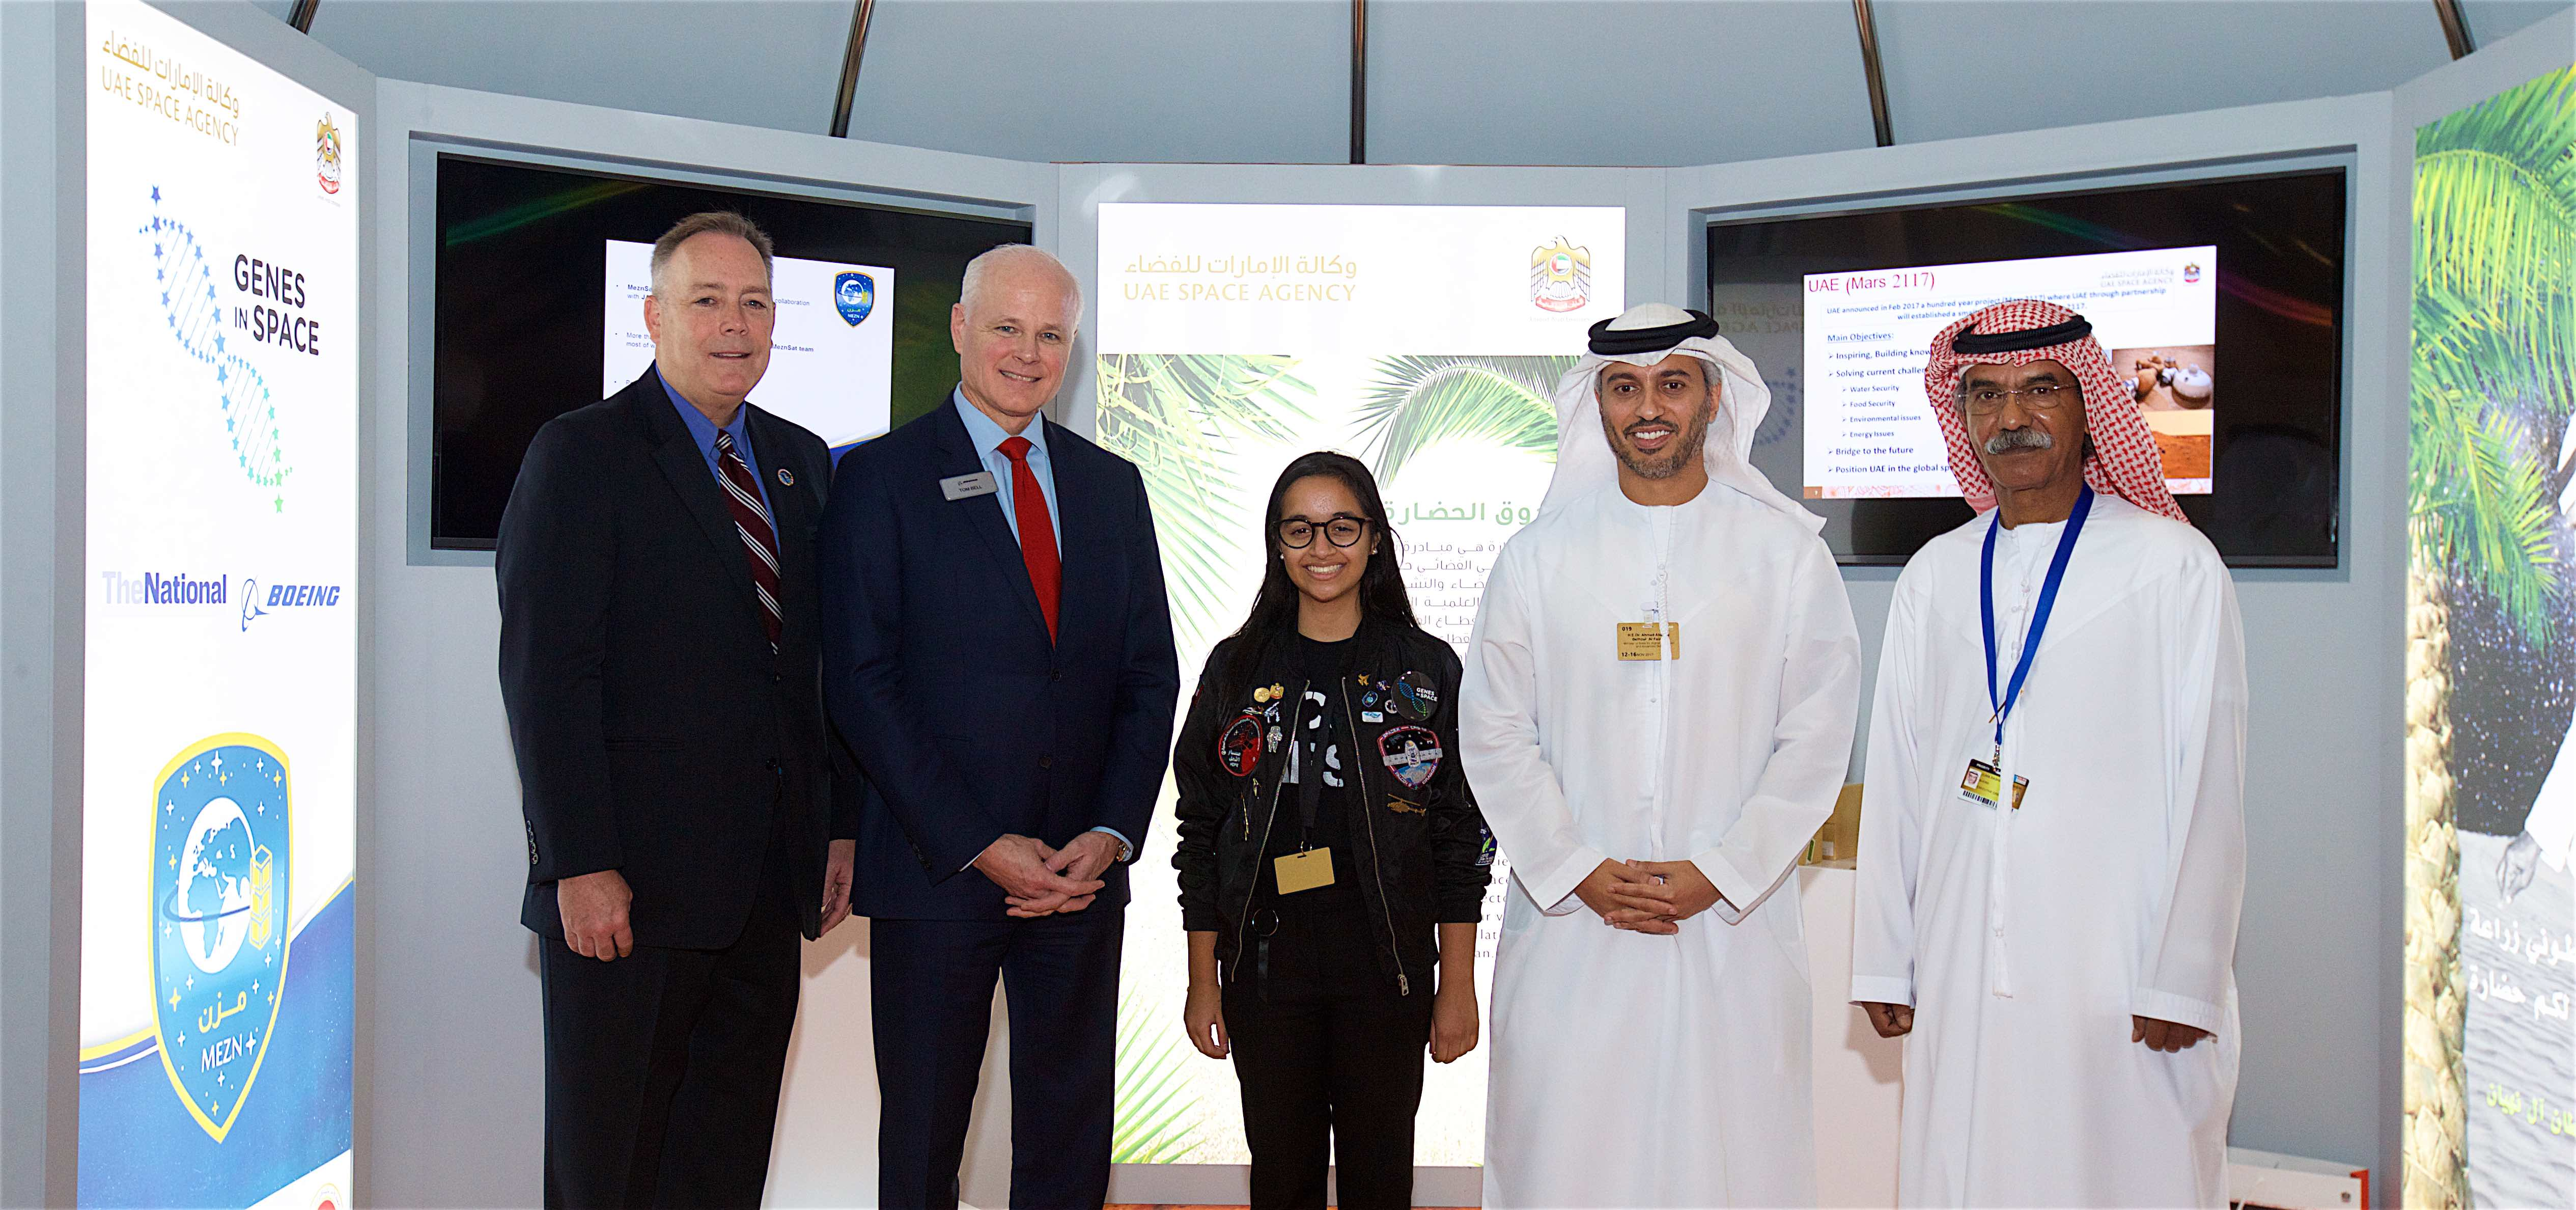 UAE Genes in Space produces successful results